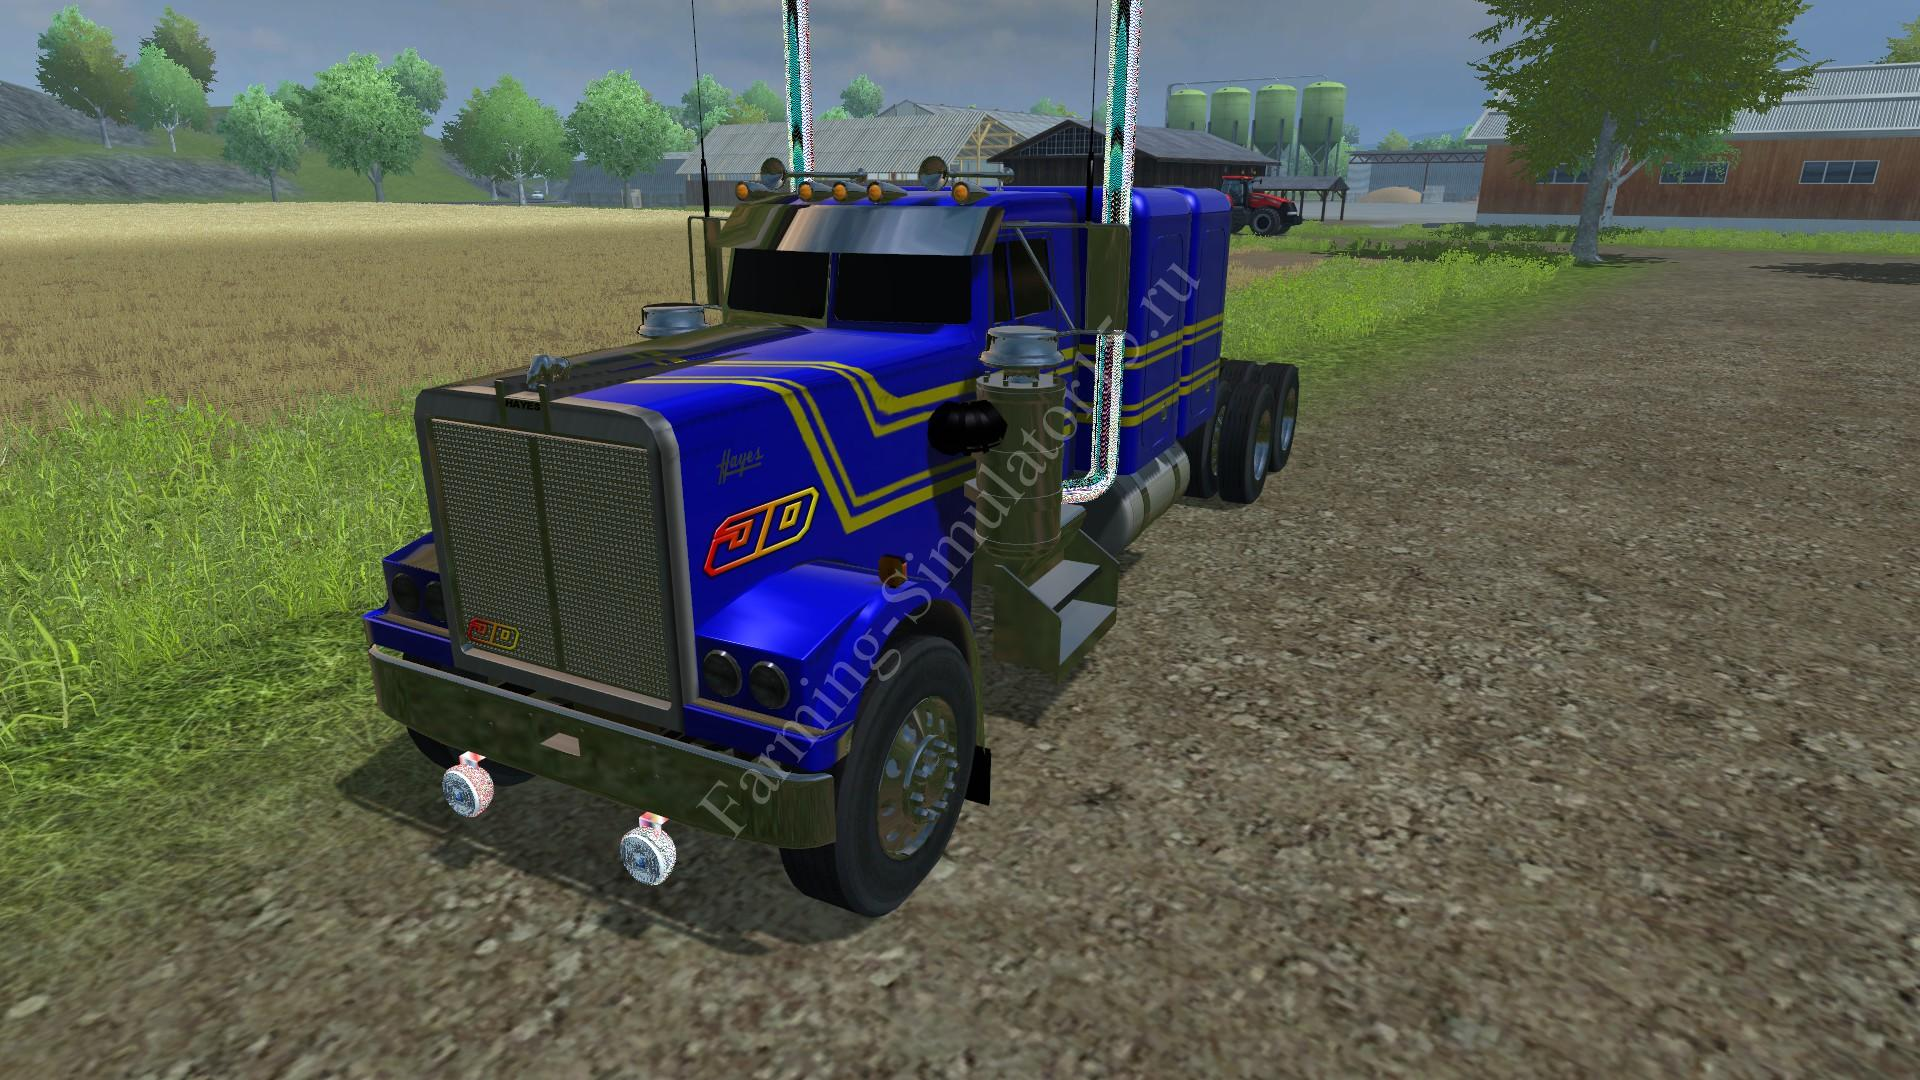 Мод грузовика Hayes Clipper 2 camas 1974 v 1.0 Farming Simulator 2013, Farming Simulator 13